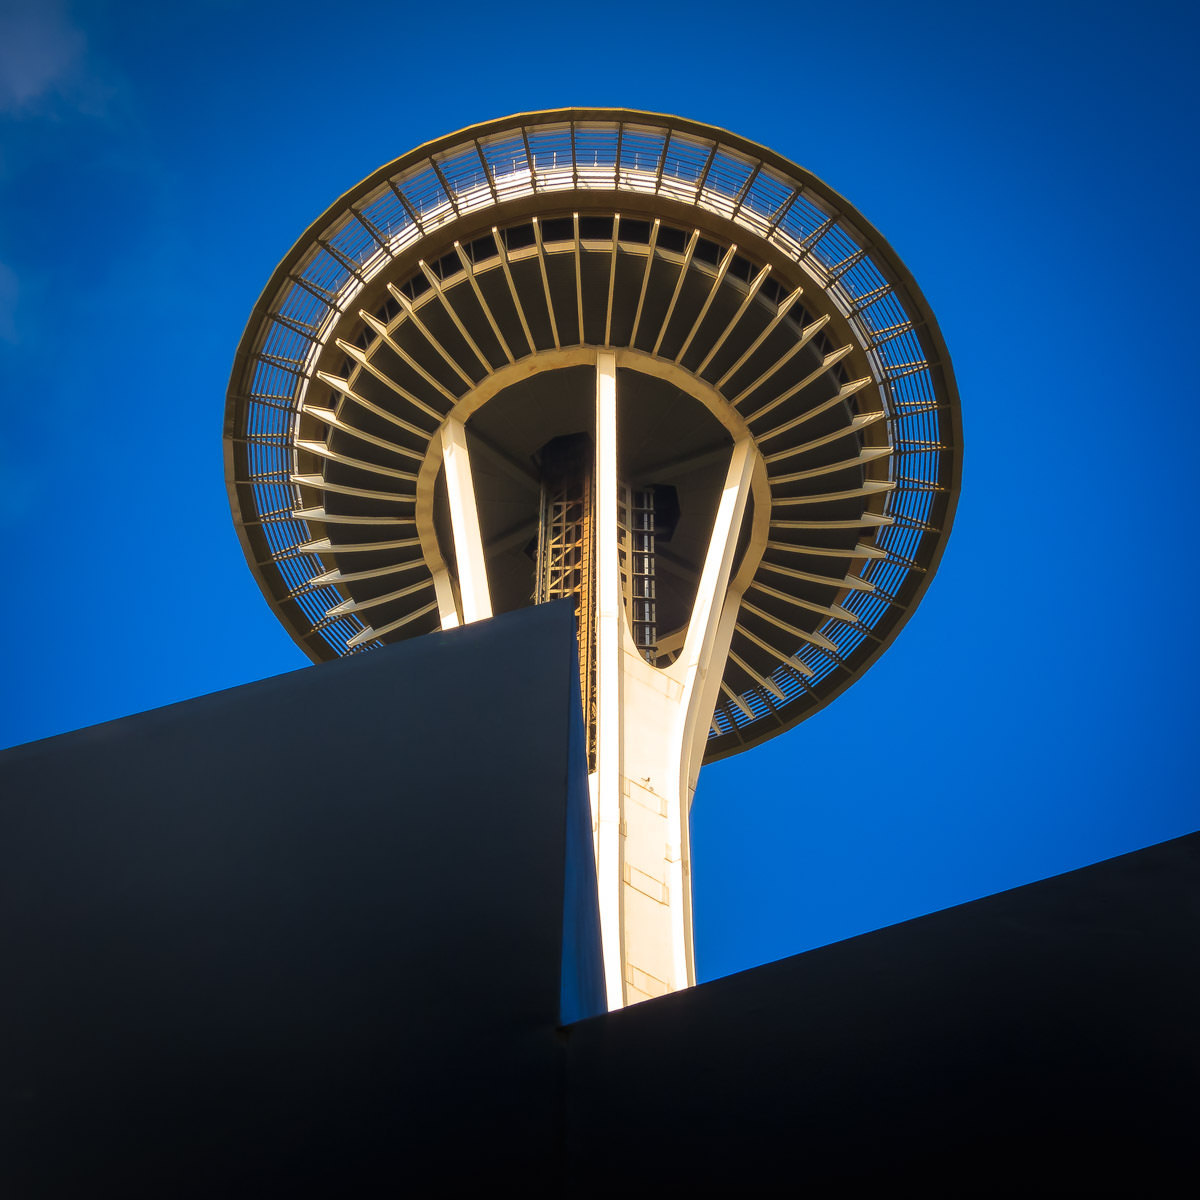 The iconic Space Needle rises into the clear blue sky over Seattle.